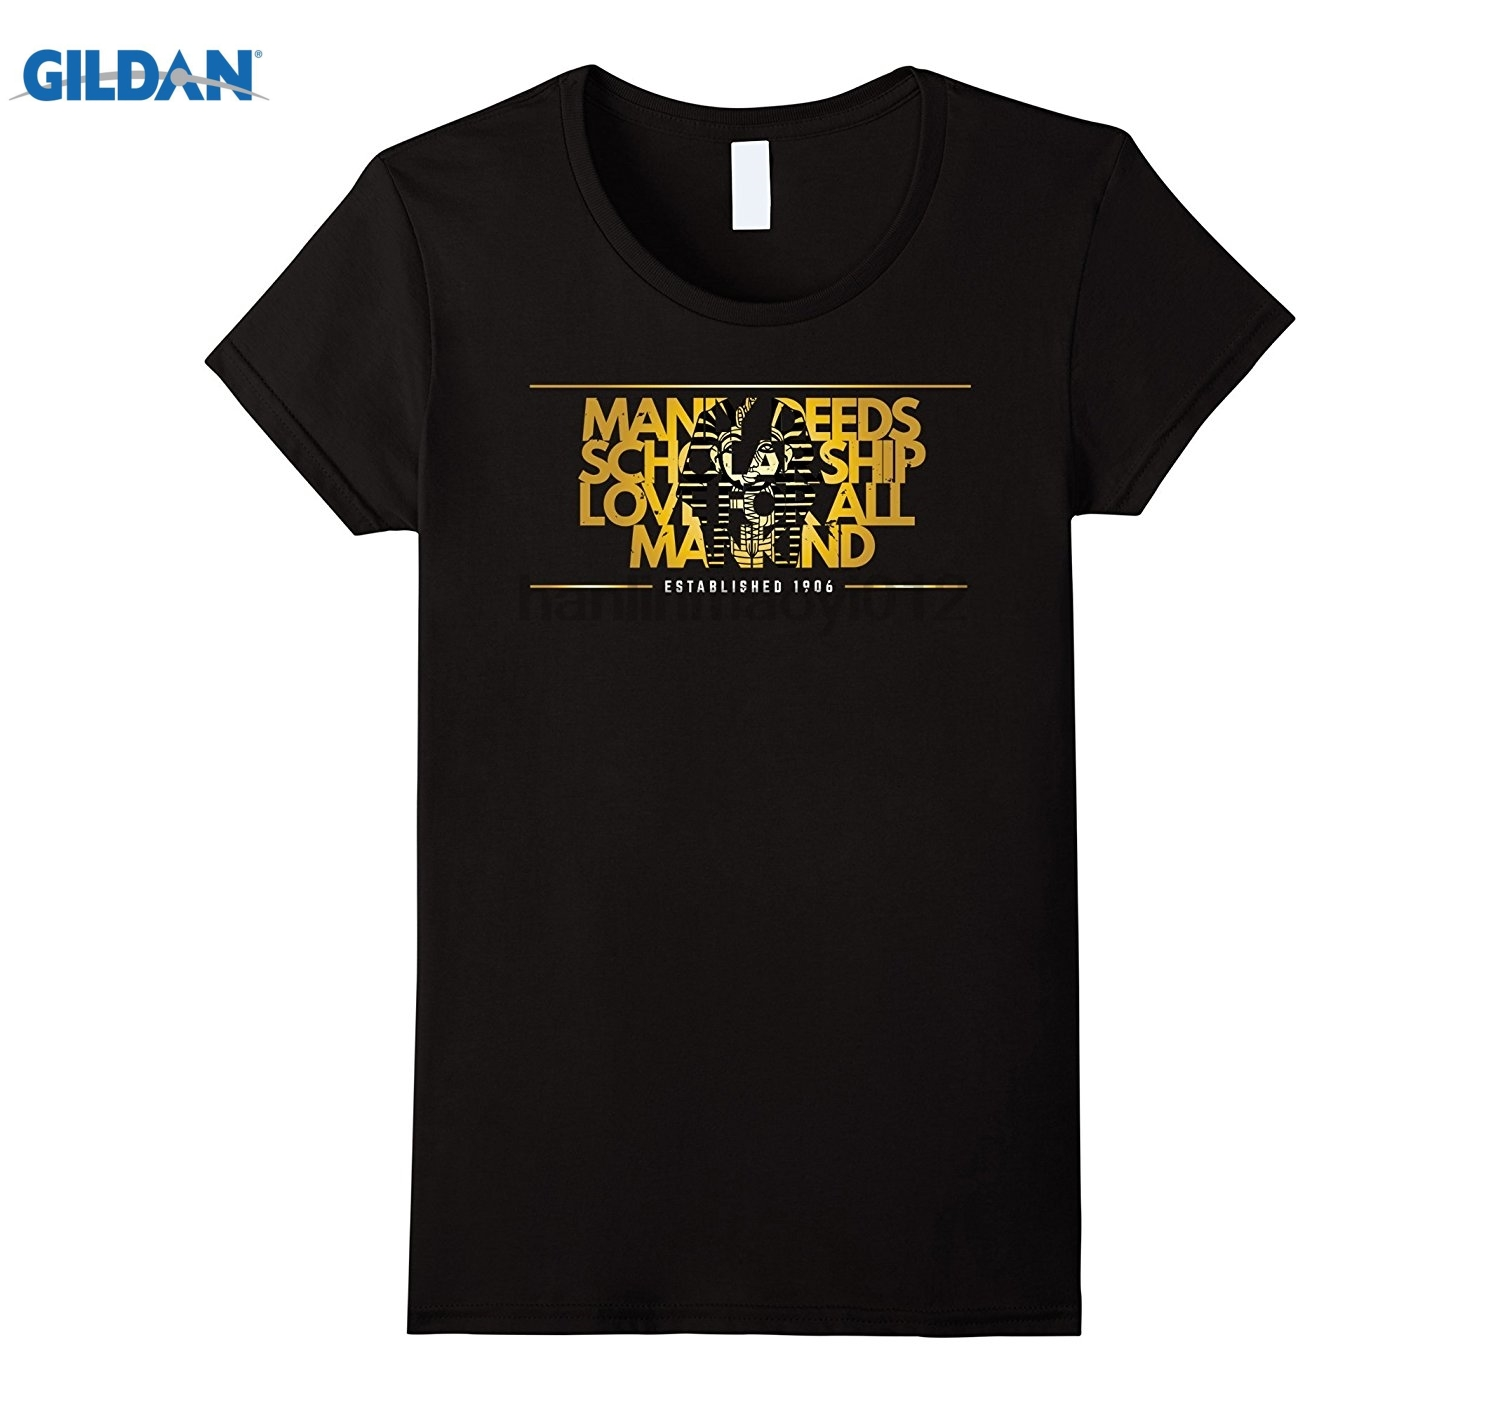 GILDAN Alphas Ice Cold - Principles 1906 Manly Deeds, Scholarship Womens T-shirt